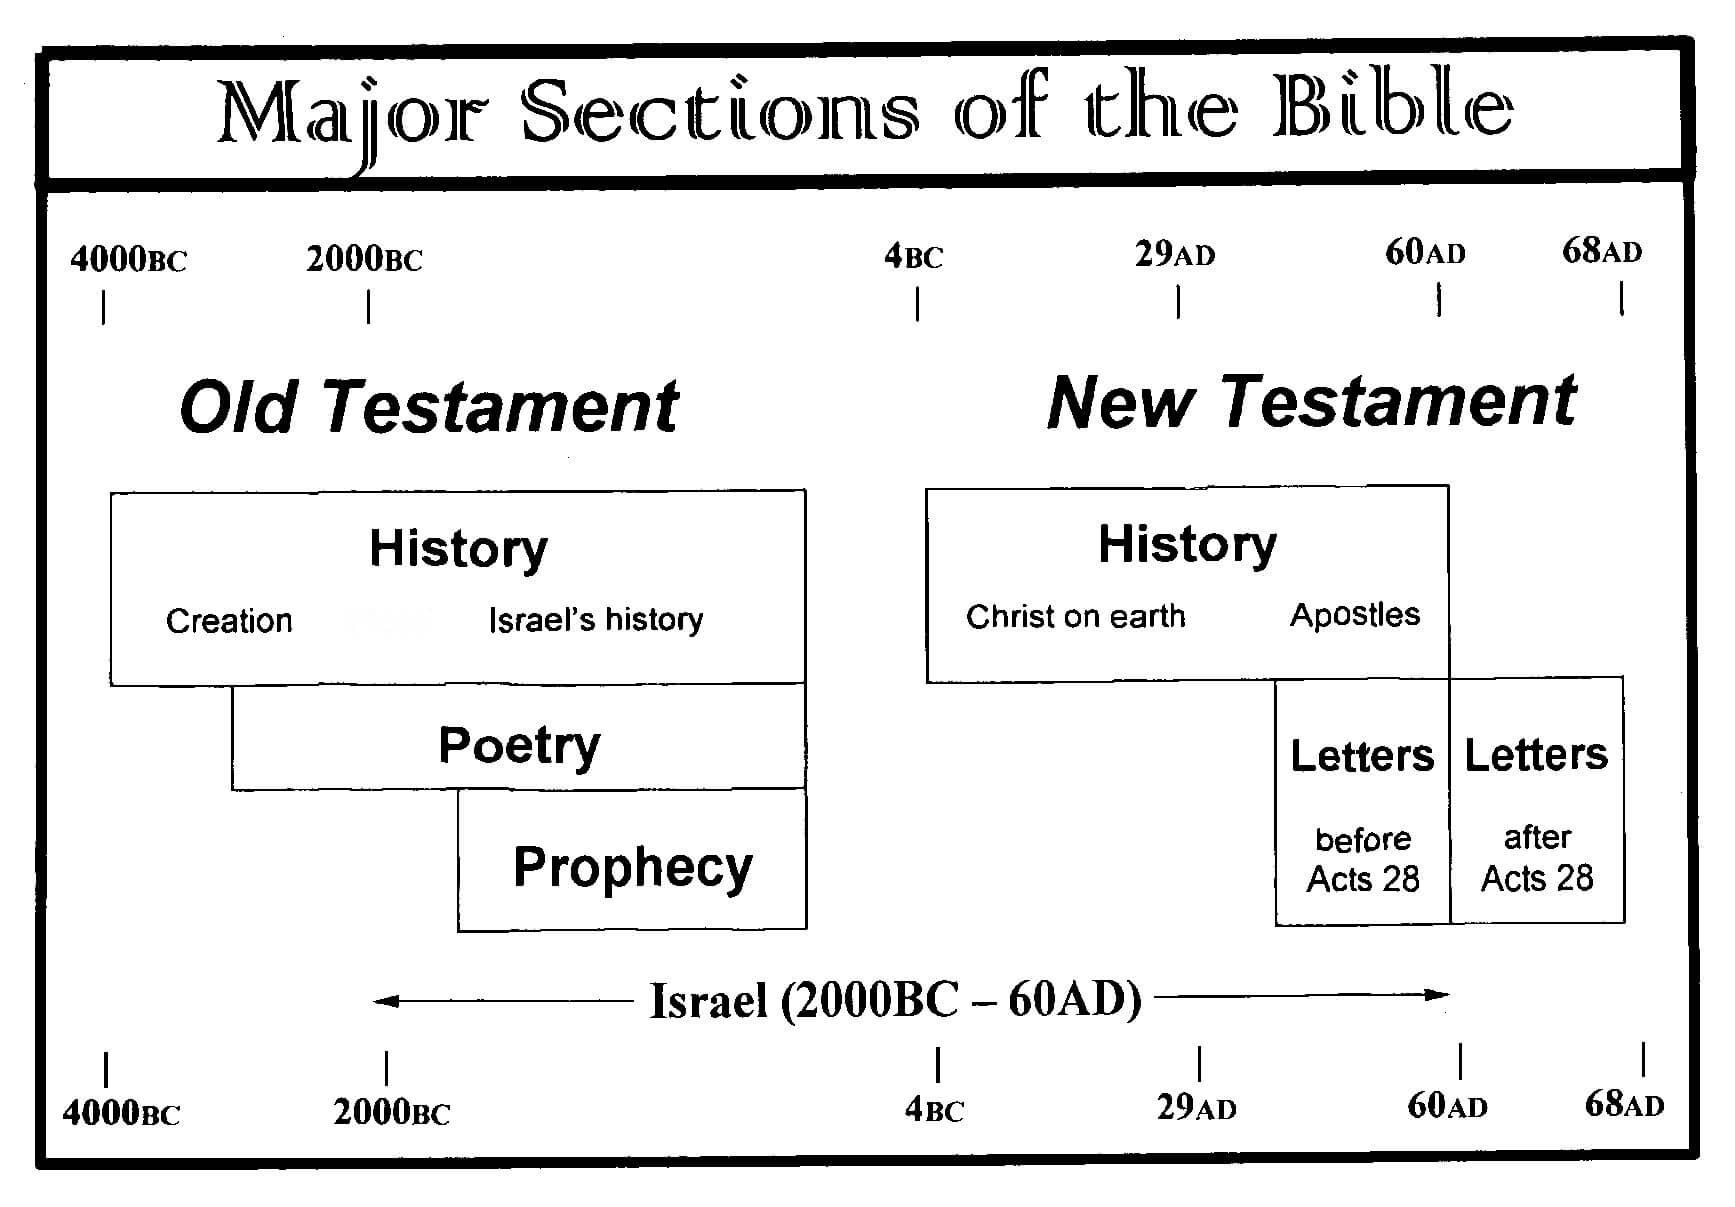 Major Sections of the Bible - chart